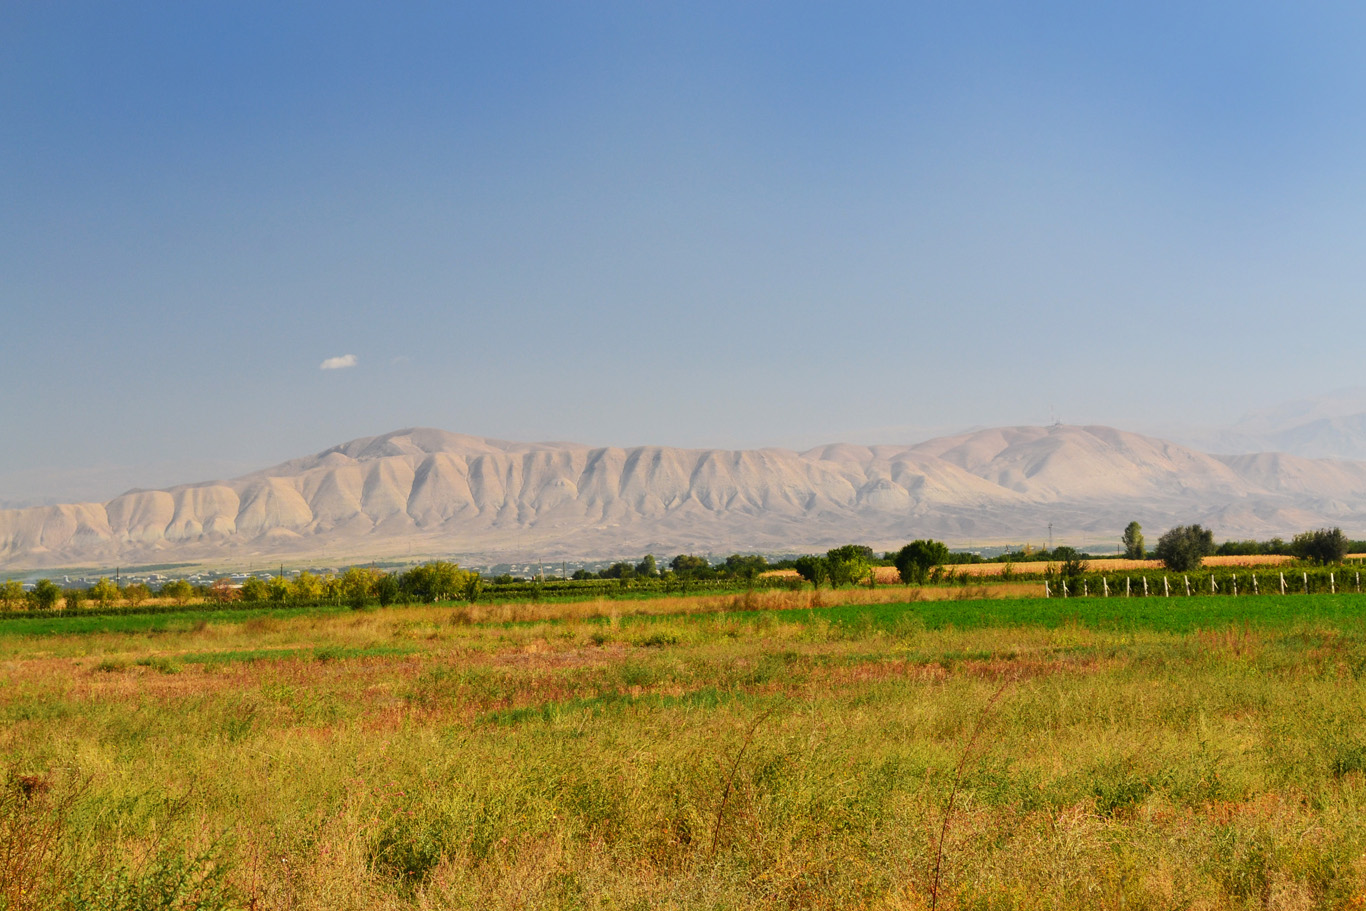 Contrast - dry mountains and green pastures